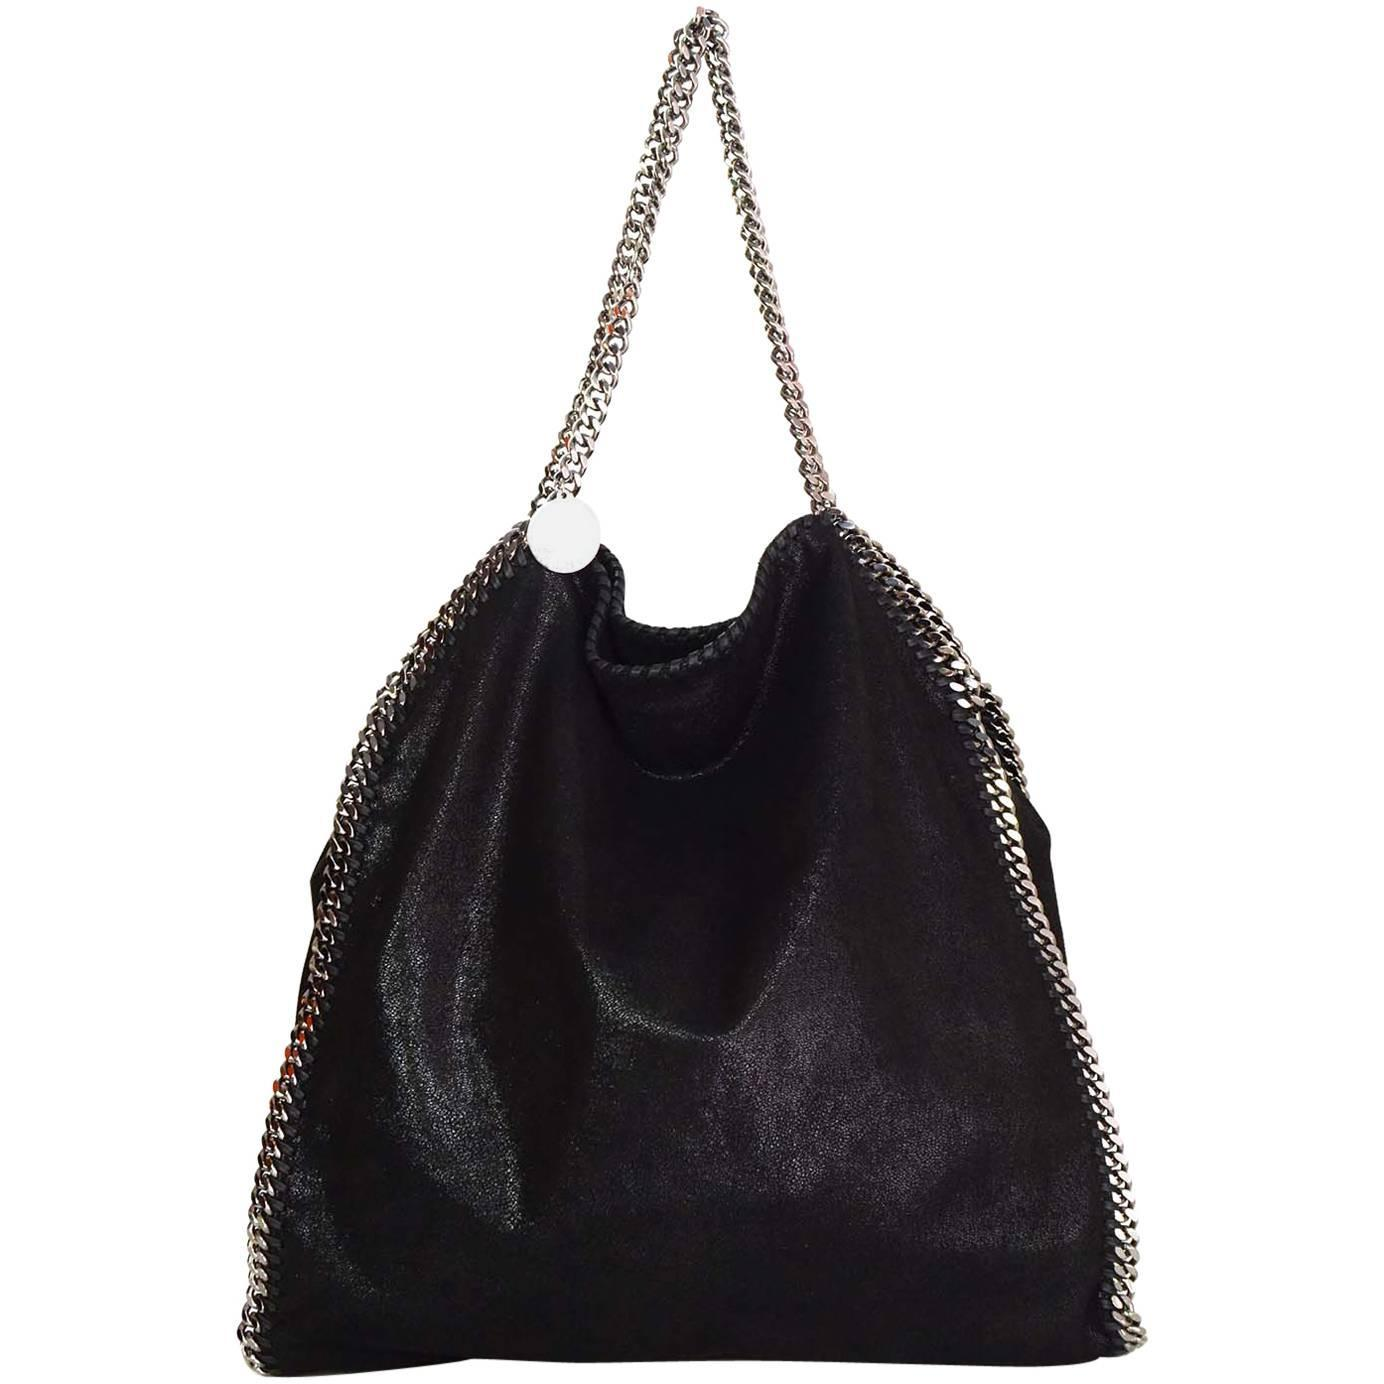 stella mccartney black falabella tote with shw for sale at 1stdibs. Black Bedroom Furniture Sets. Home Design Ideas